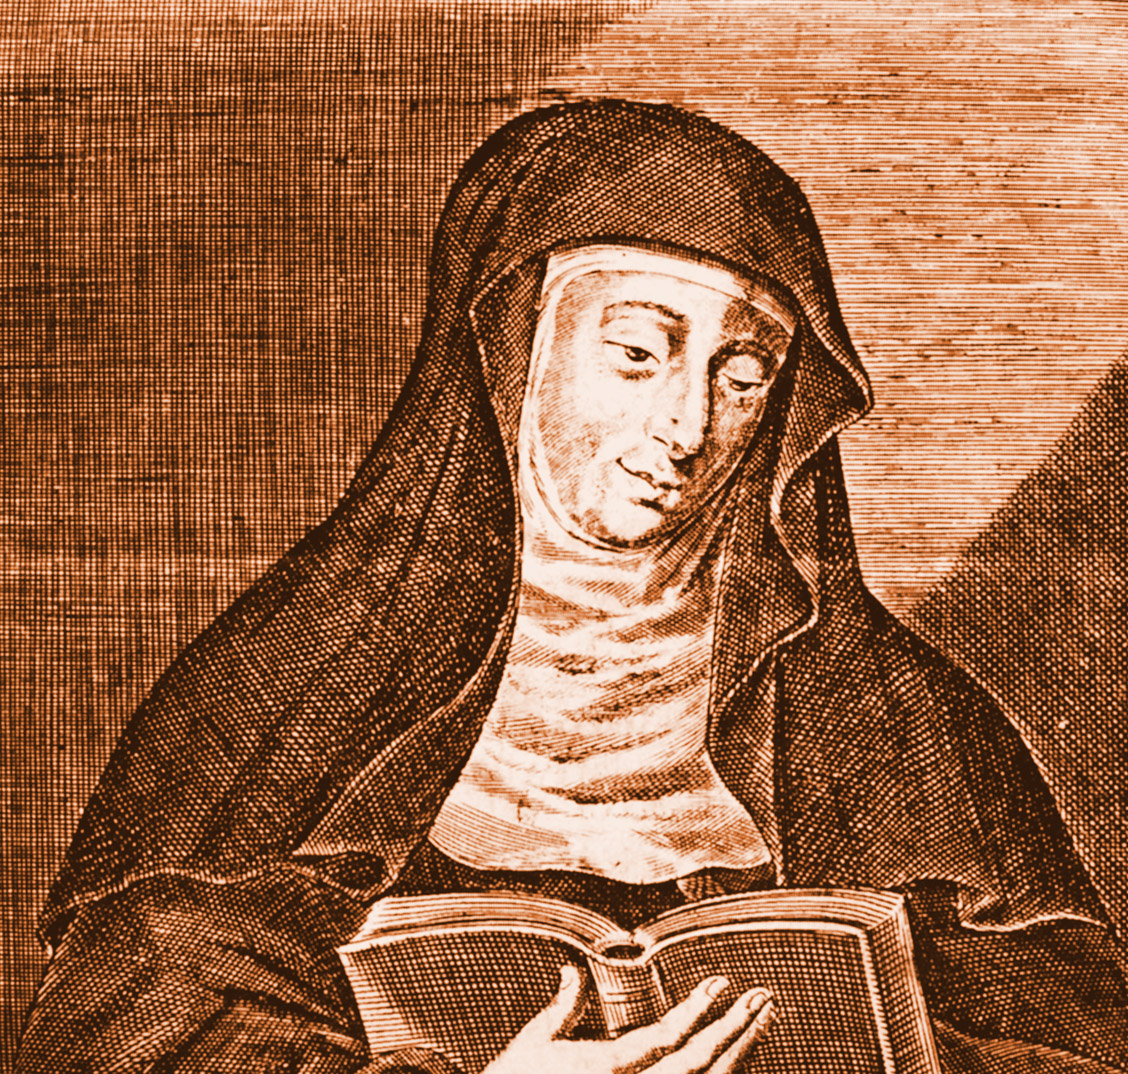 hildegarde of bingen Hildegard, the sybil of the rhine, was a benedictine nun and one of the most prolific and original women writers of the middle ages arranged thematically, this new edition of her work brings together selections from her visionary trilogy, her treatise on medicine and the natural world, and her songs and correspondence.